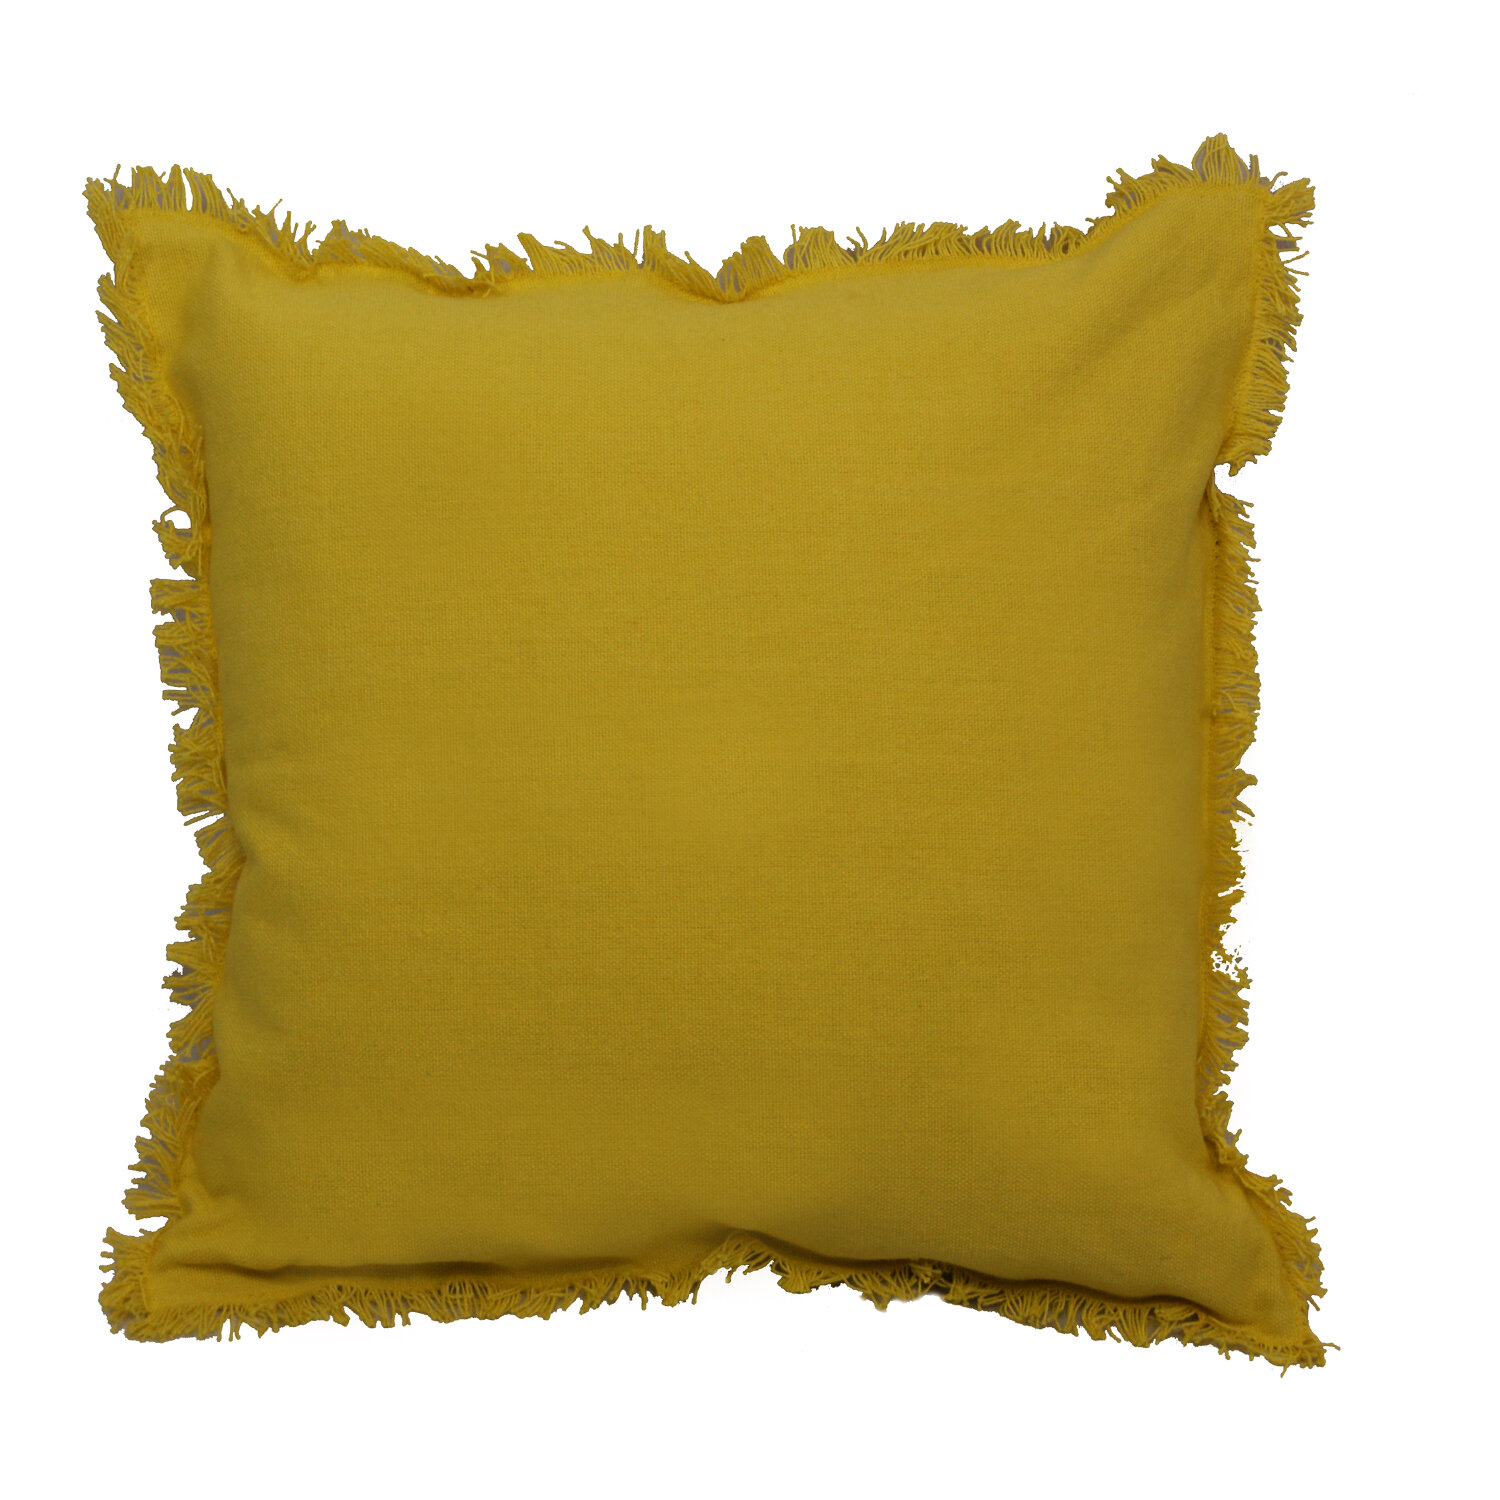 Decorative Pillows With Fringe : Throw pillows fringe on Shoppinder